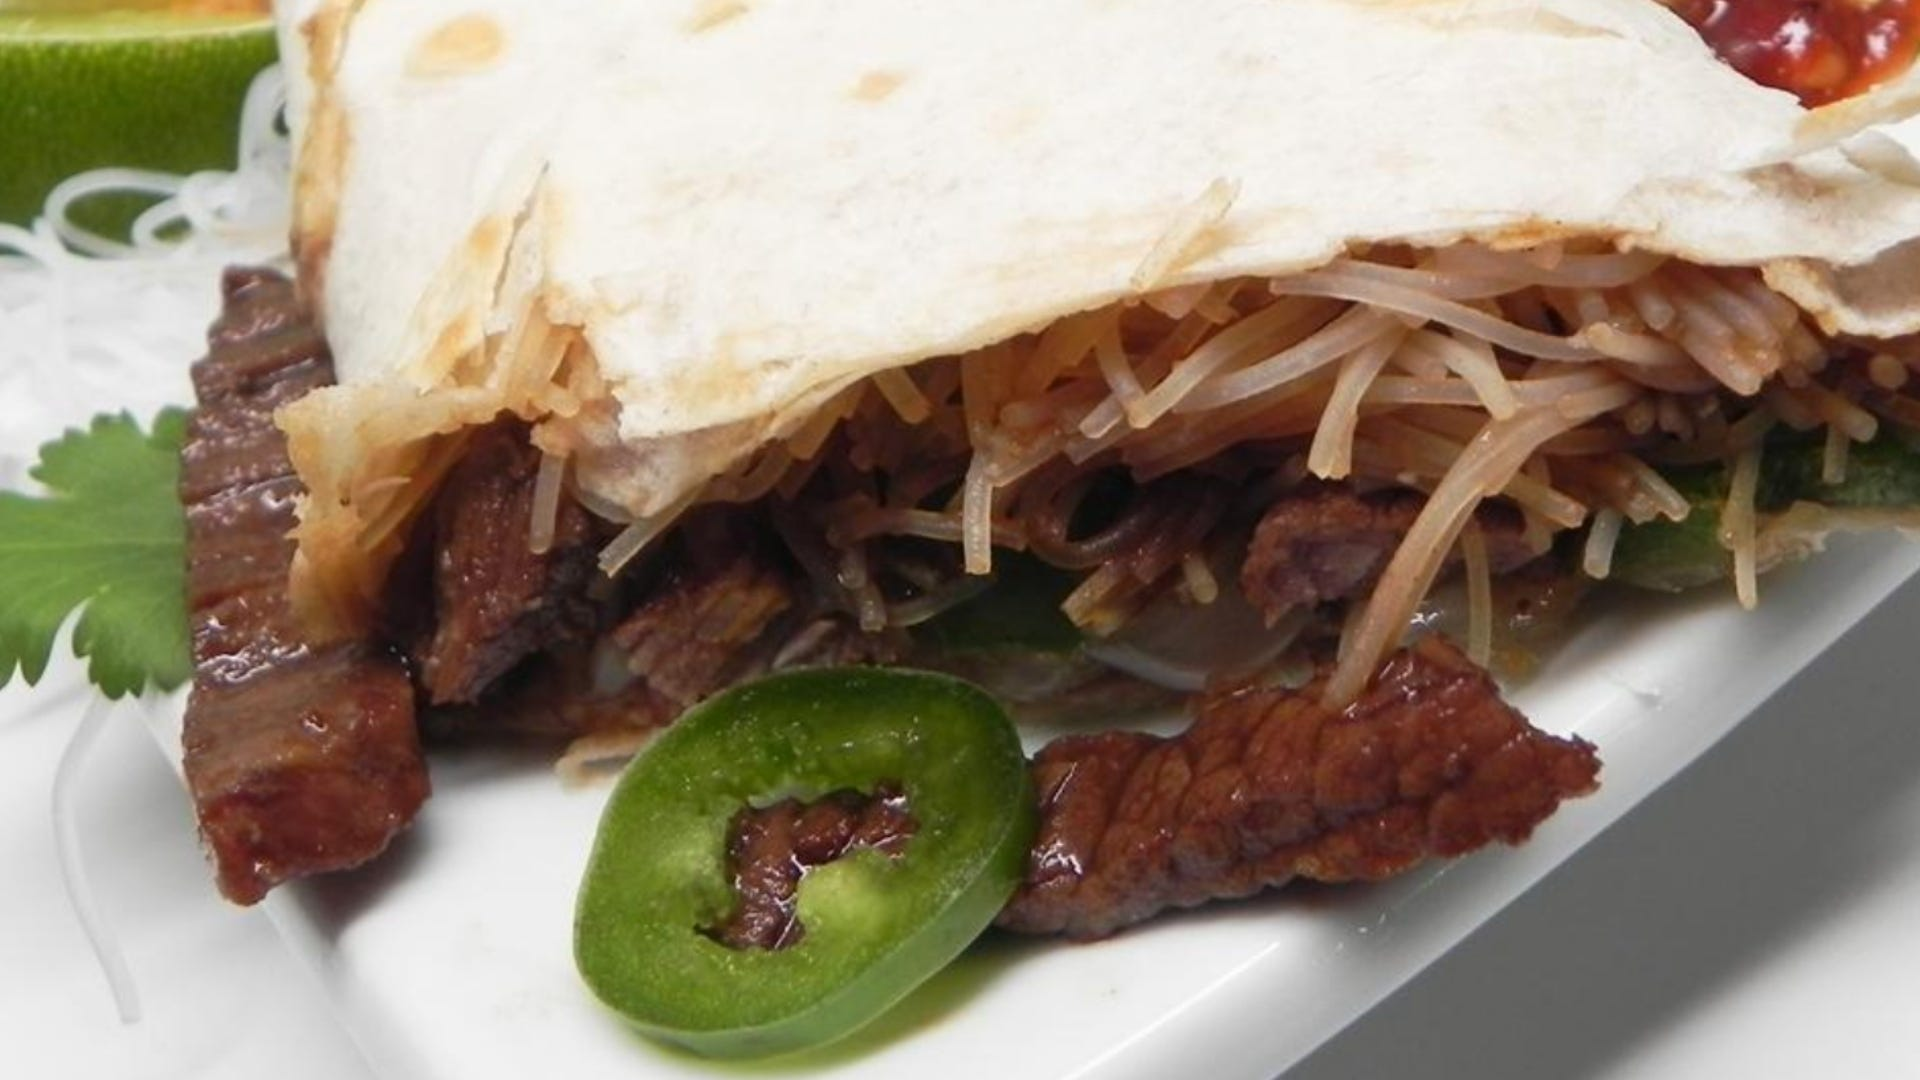 Burrito filled with rice noodles, beef, and jalapeños